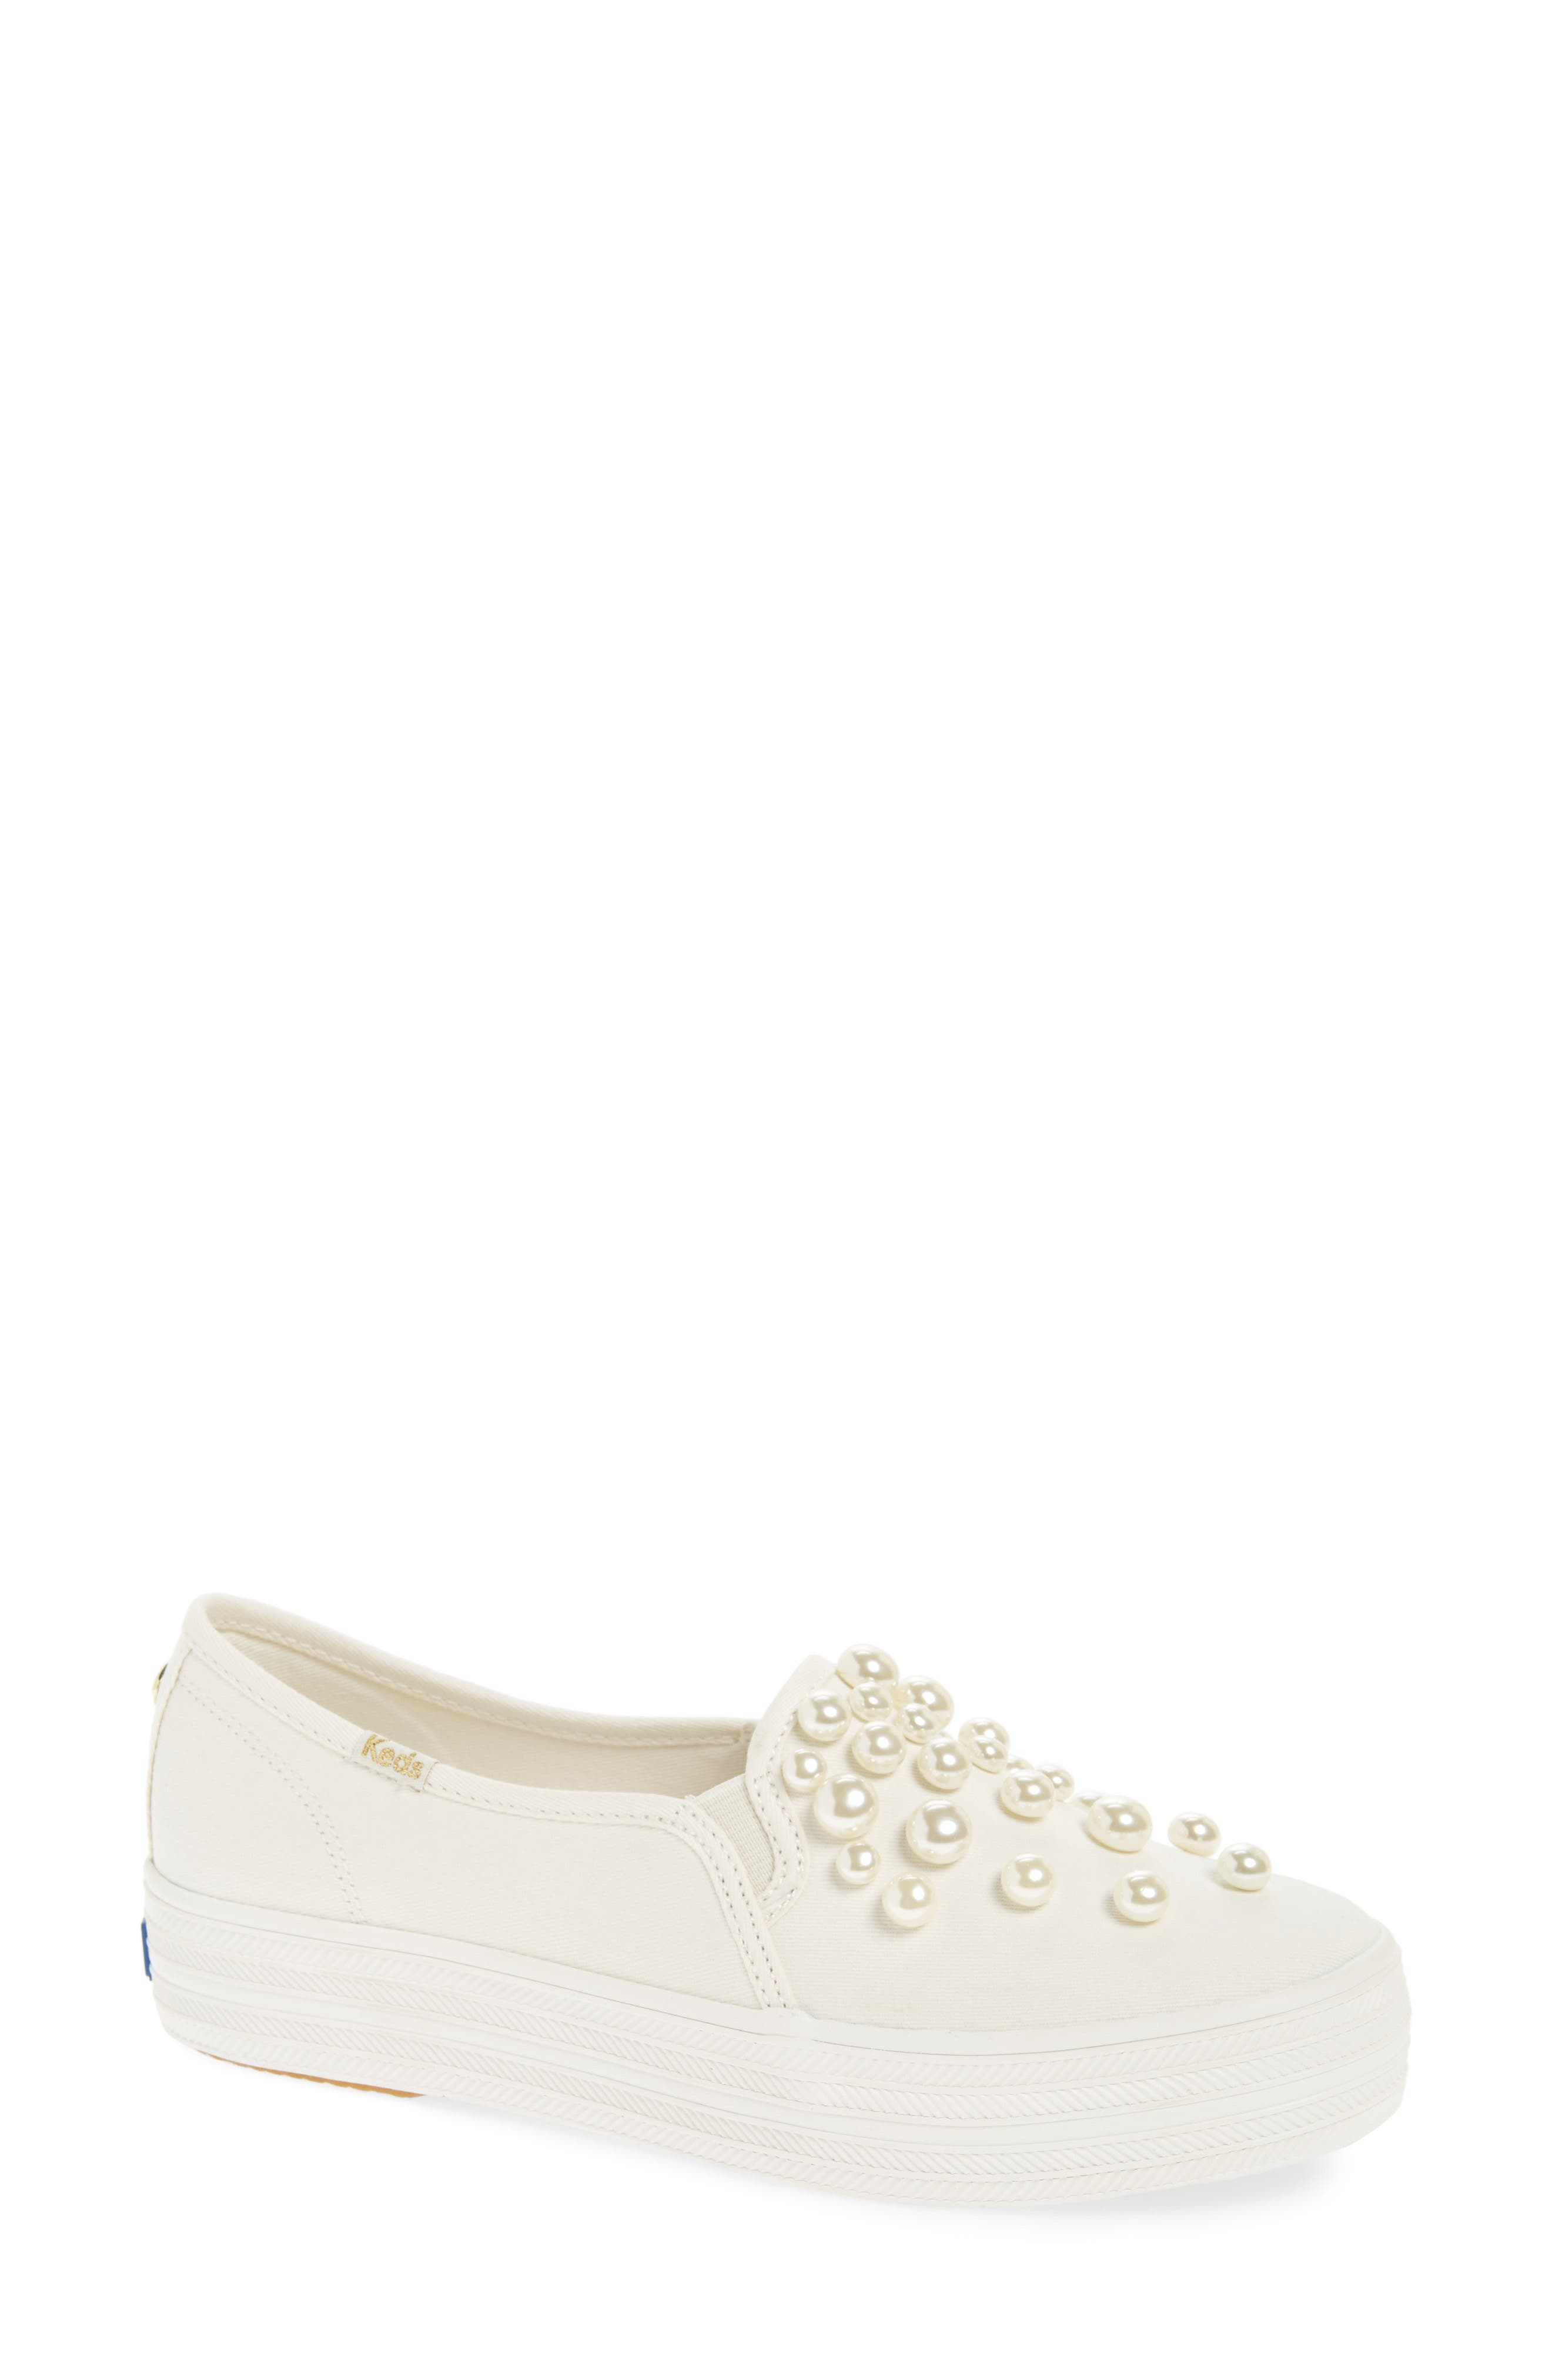 triple decker embellished slip-on sneaker,                         Main,                         color, Cream